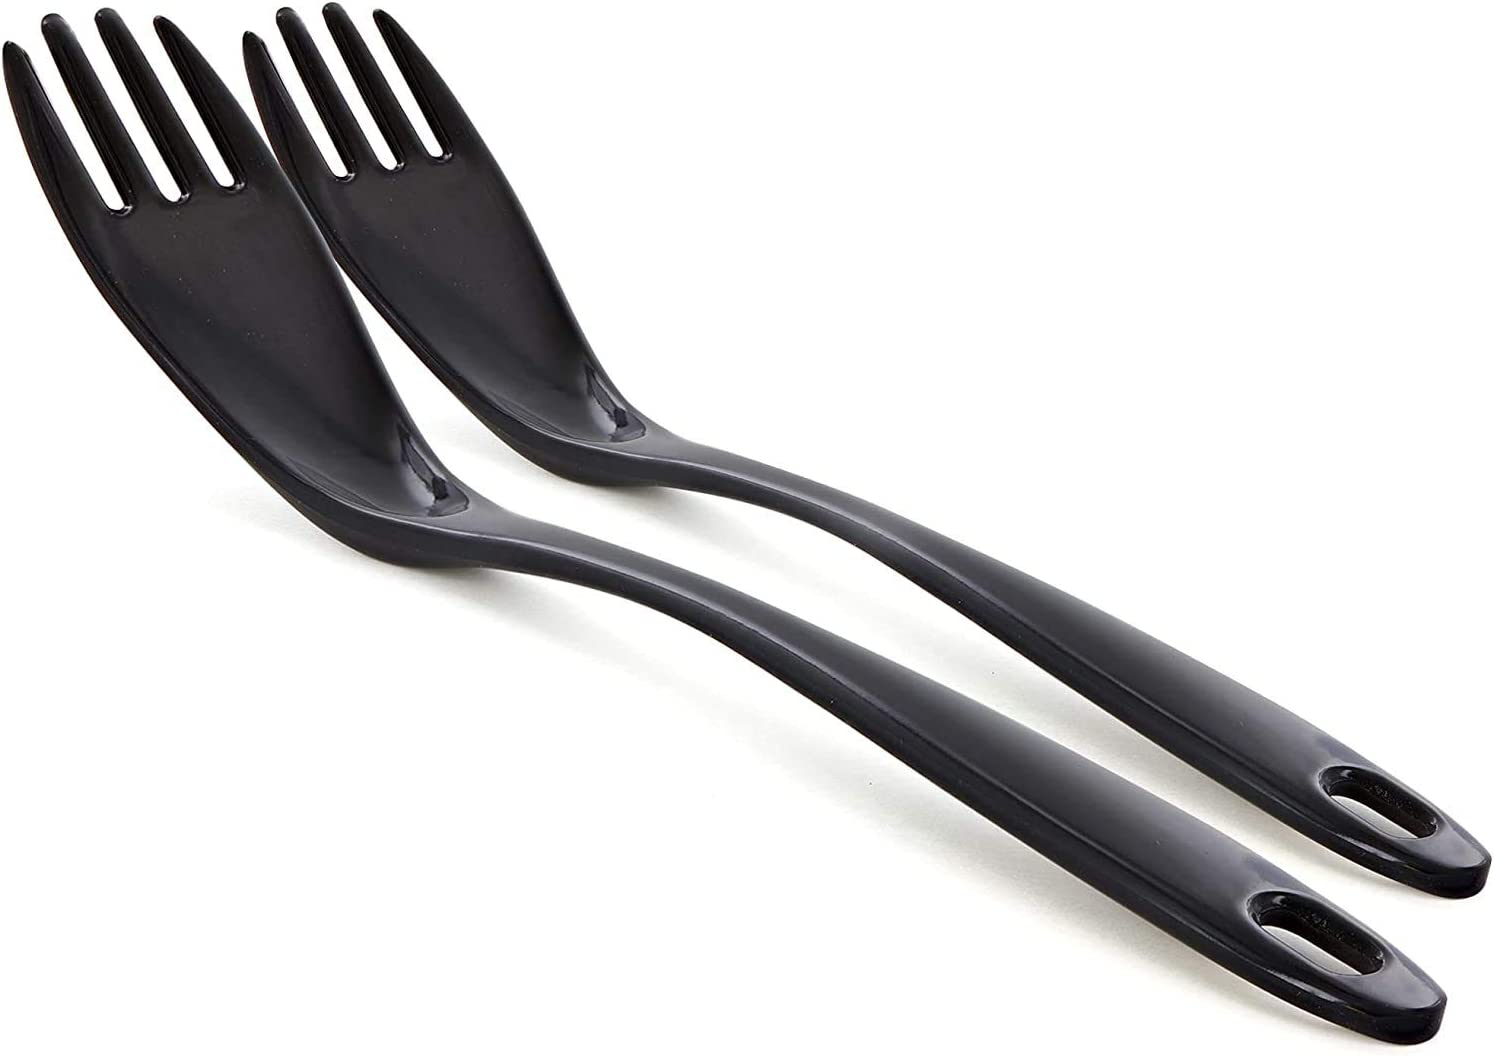 Ram-Pro Melamine Utensil Black Fork Heavy Duty Kitchen Dinner Cutlery Cake Pastry Salad Flatware Table Forks for Home Kitchen or Restaurant Pack of 2